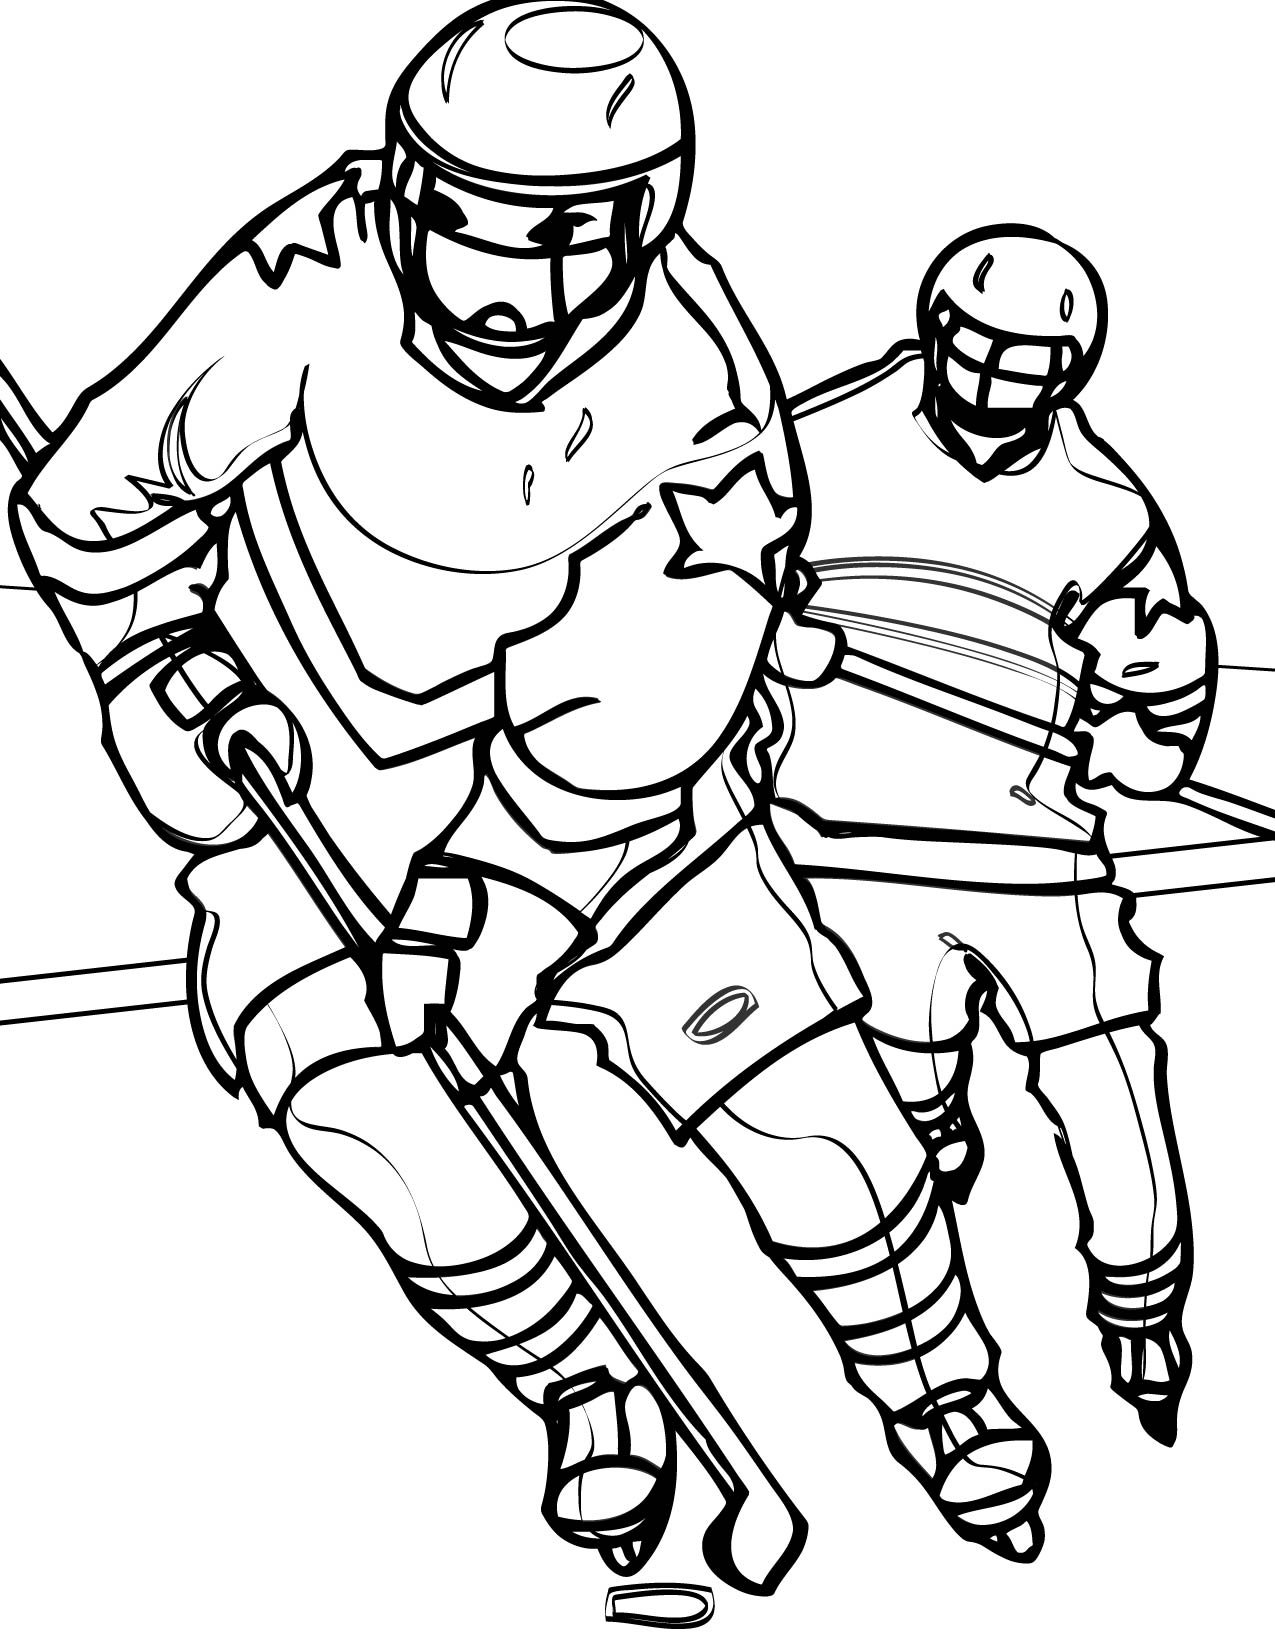 Free sports color sheets murderthestout for Softball coloring pages to print